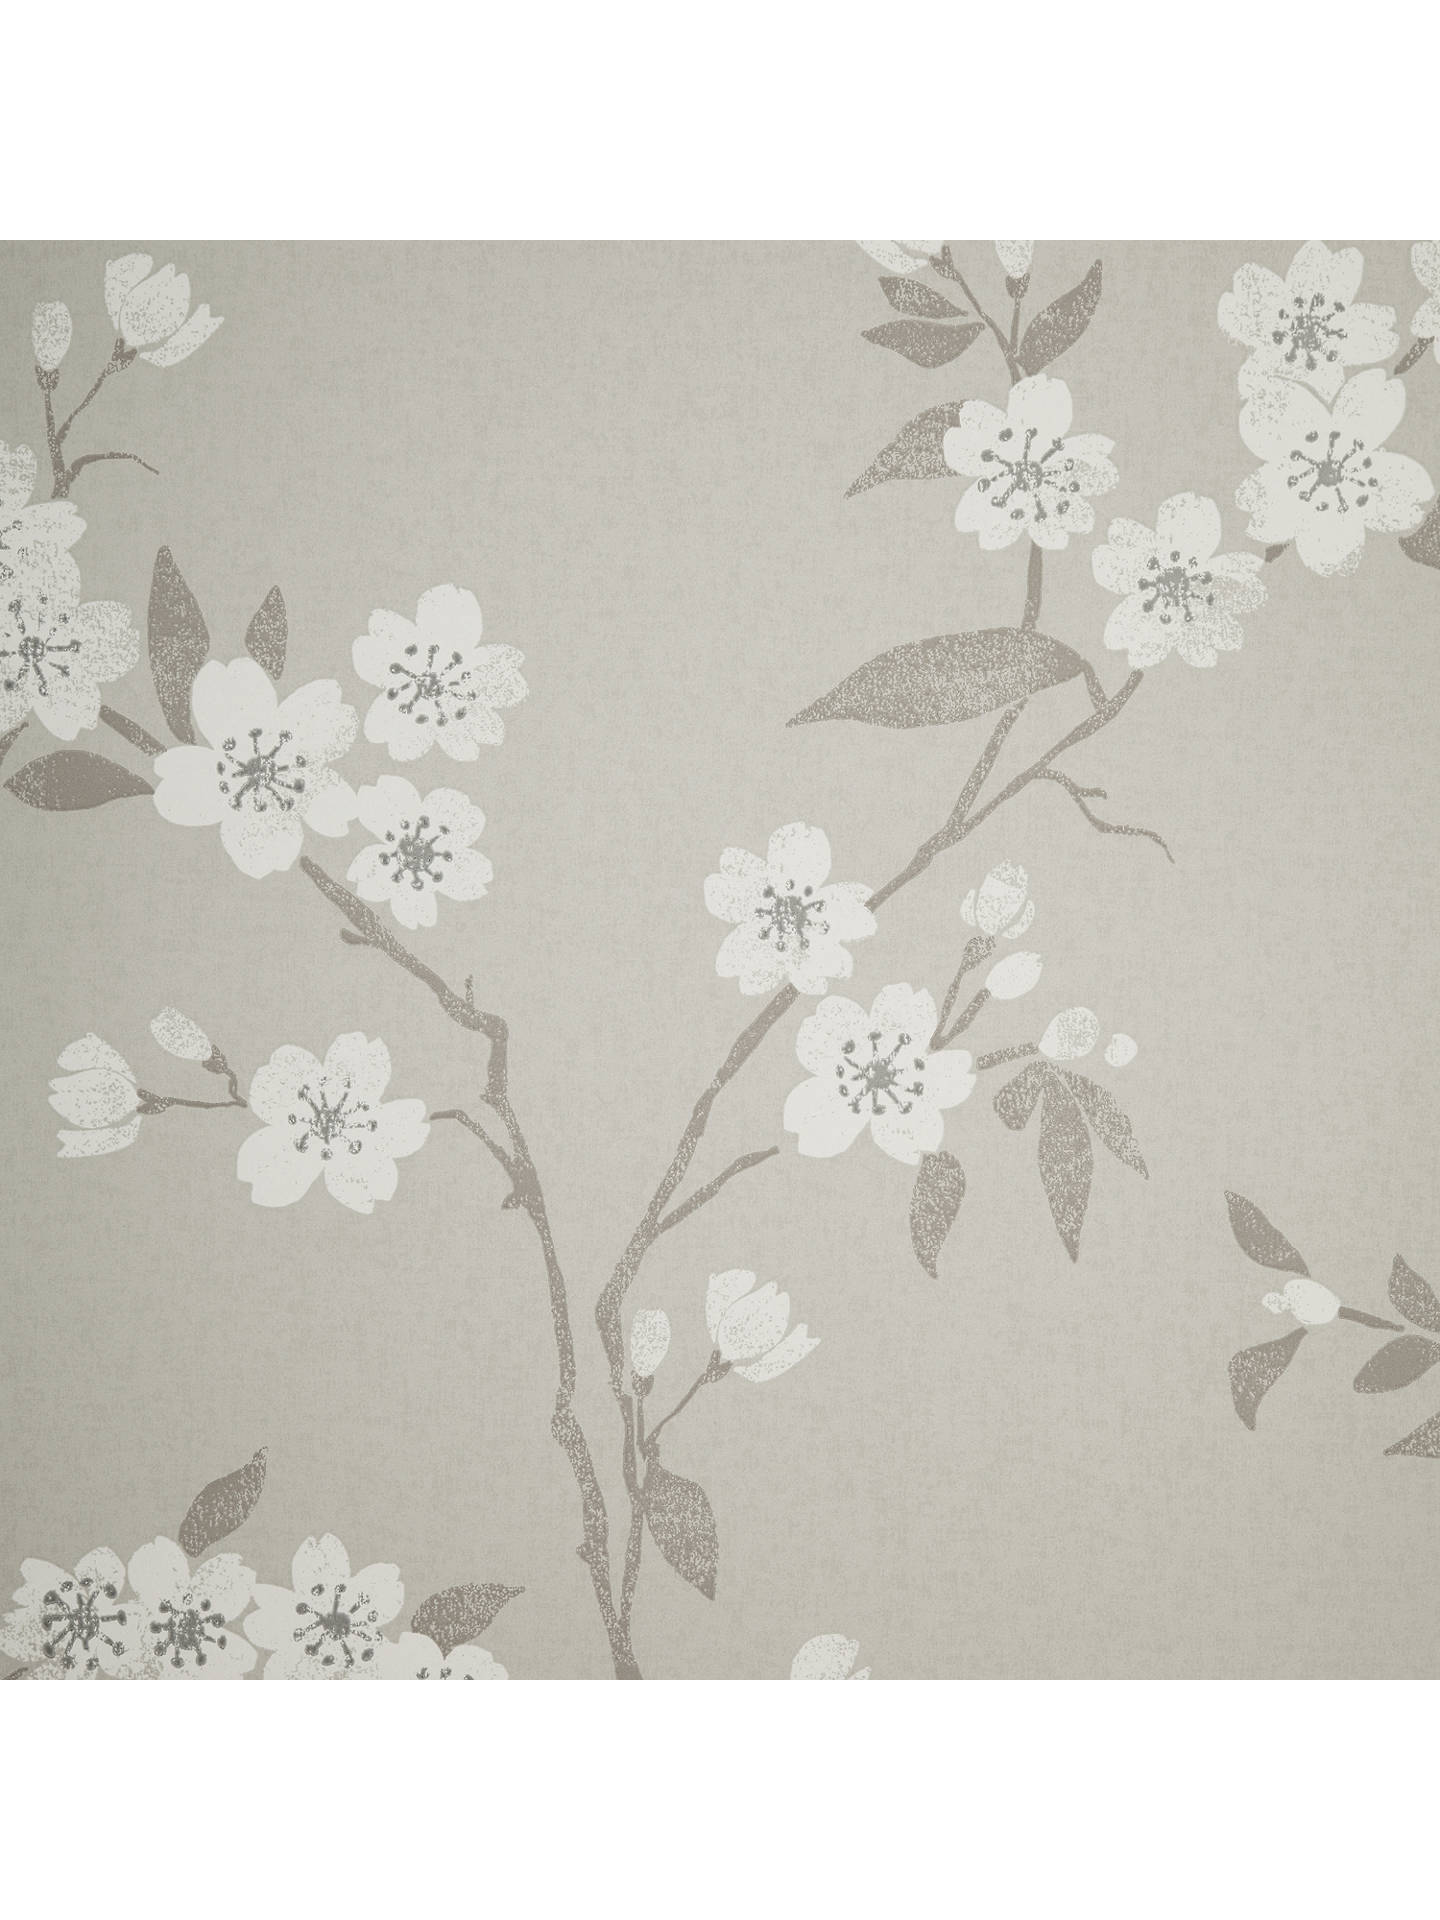 BuyJohn Lewis Partners Cherry Blossom Wallpaper Putty Online At Johnlewis